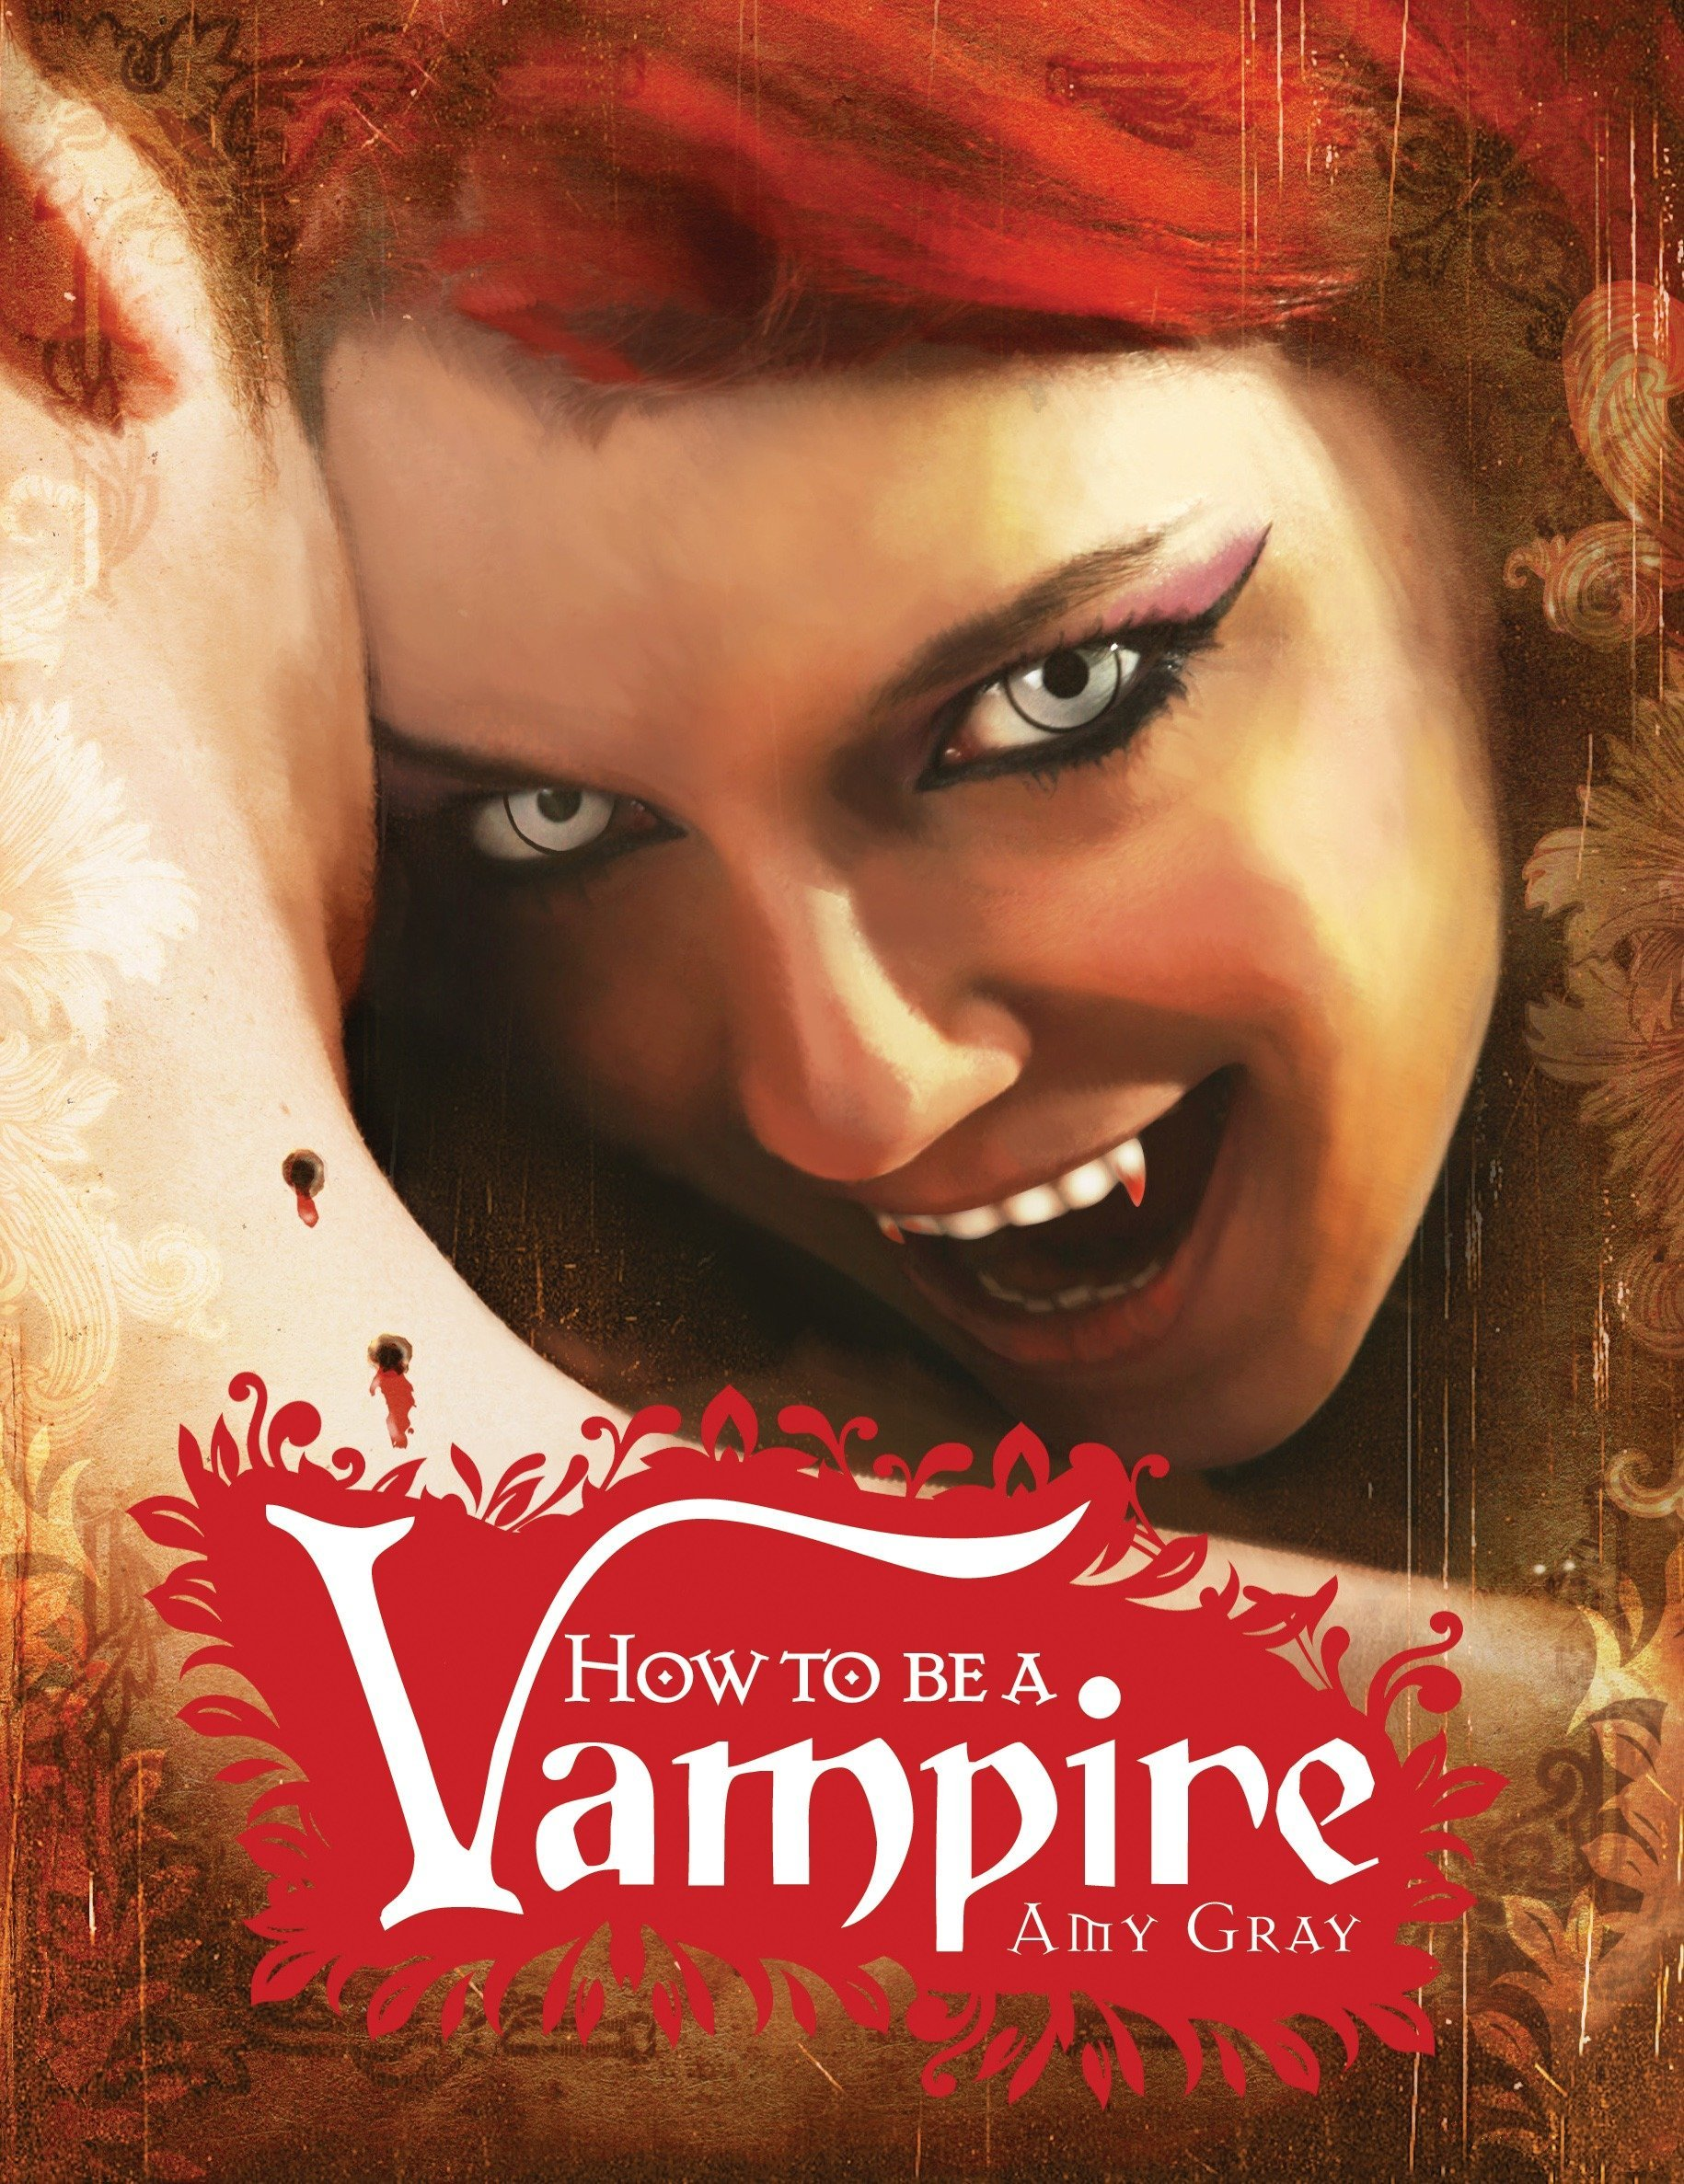 Download How to Be a Vampire: A Fangs-On Guide for the Newly Undead PDF